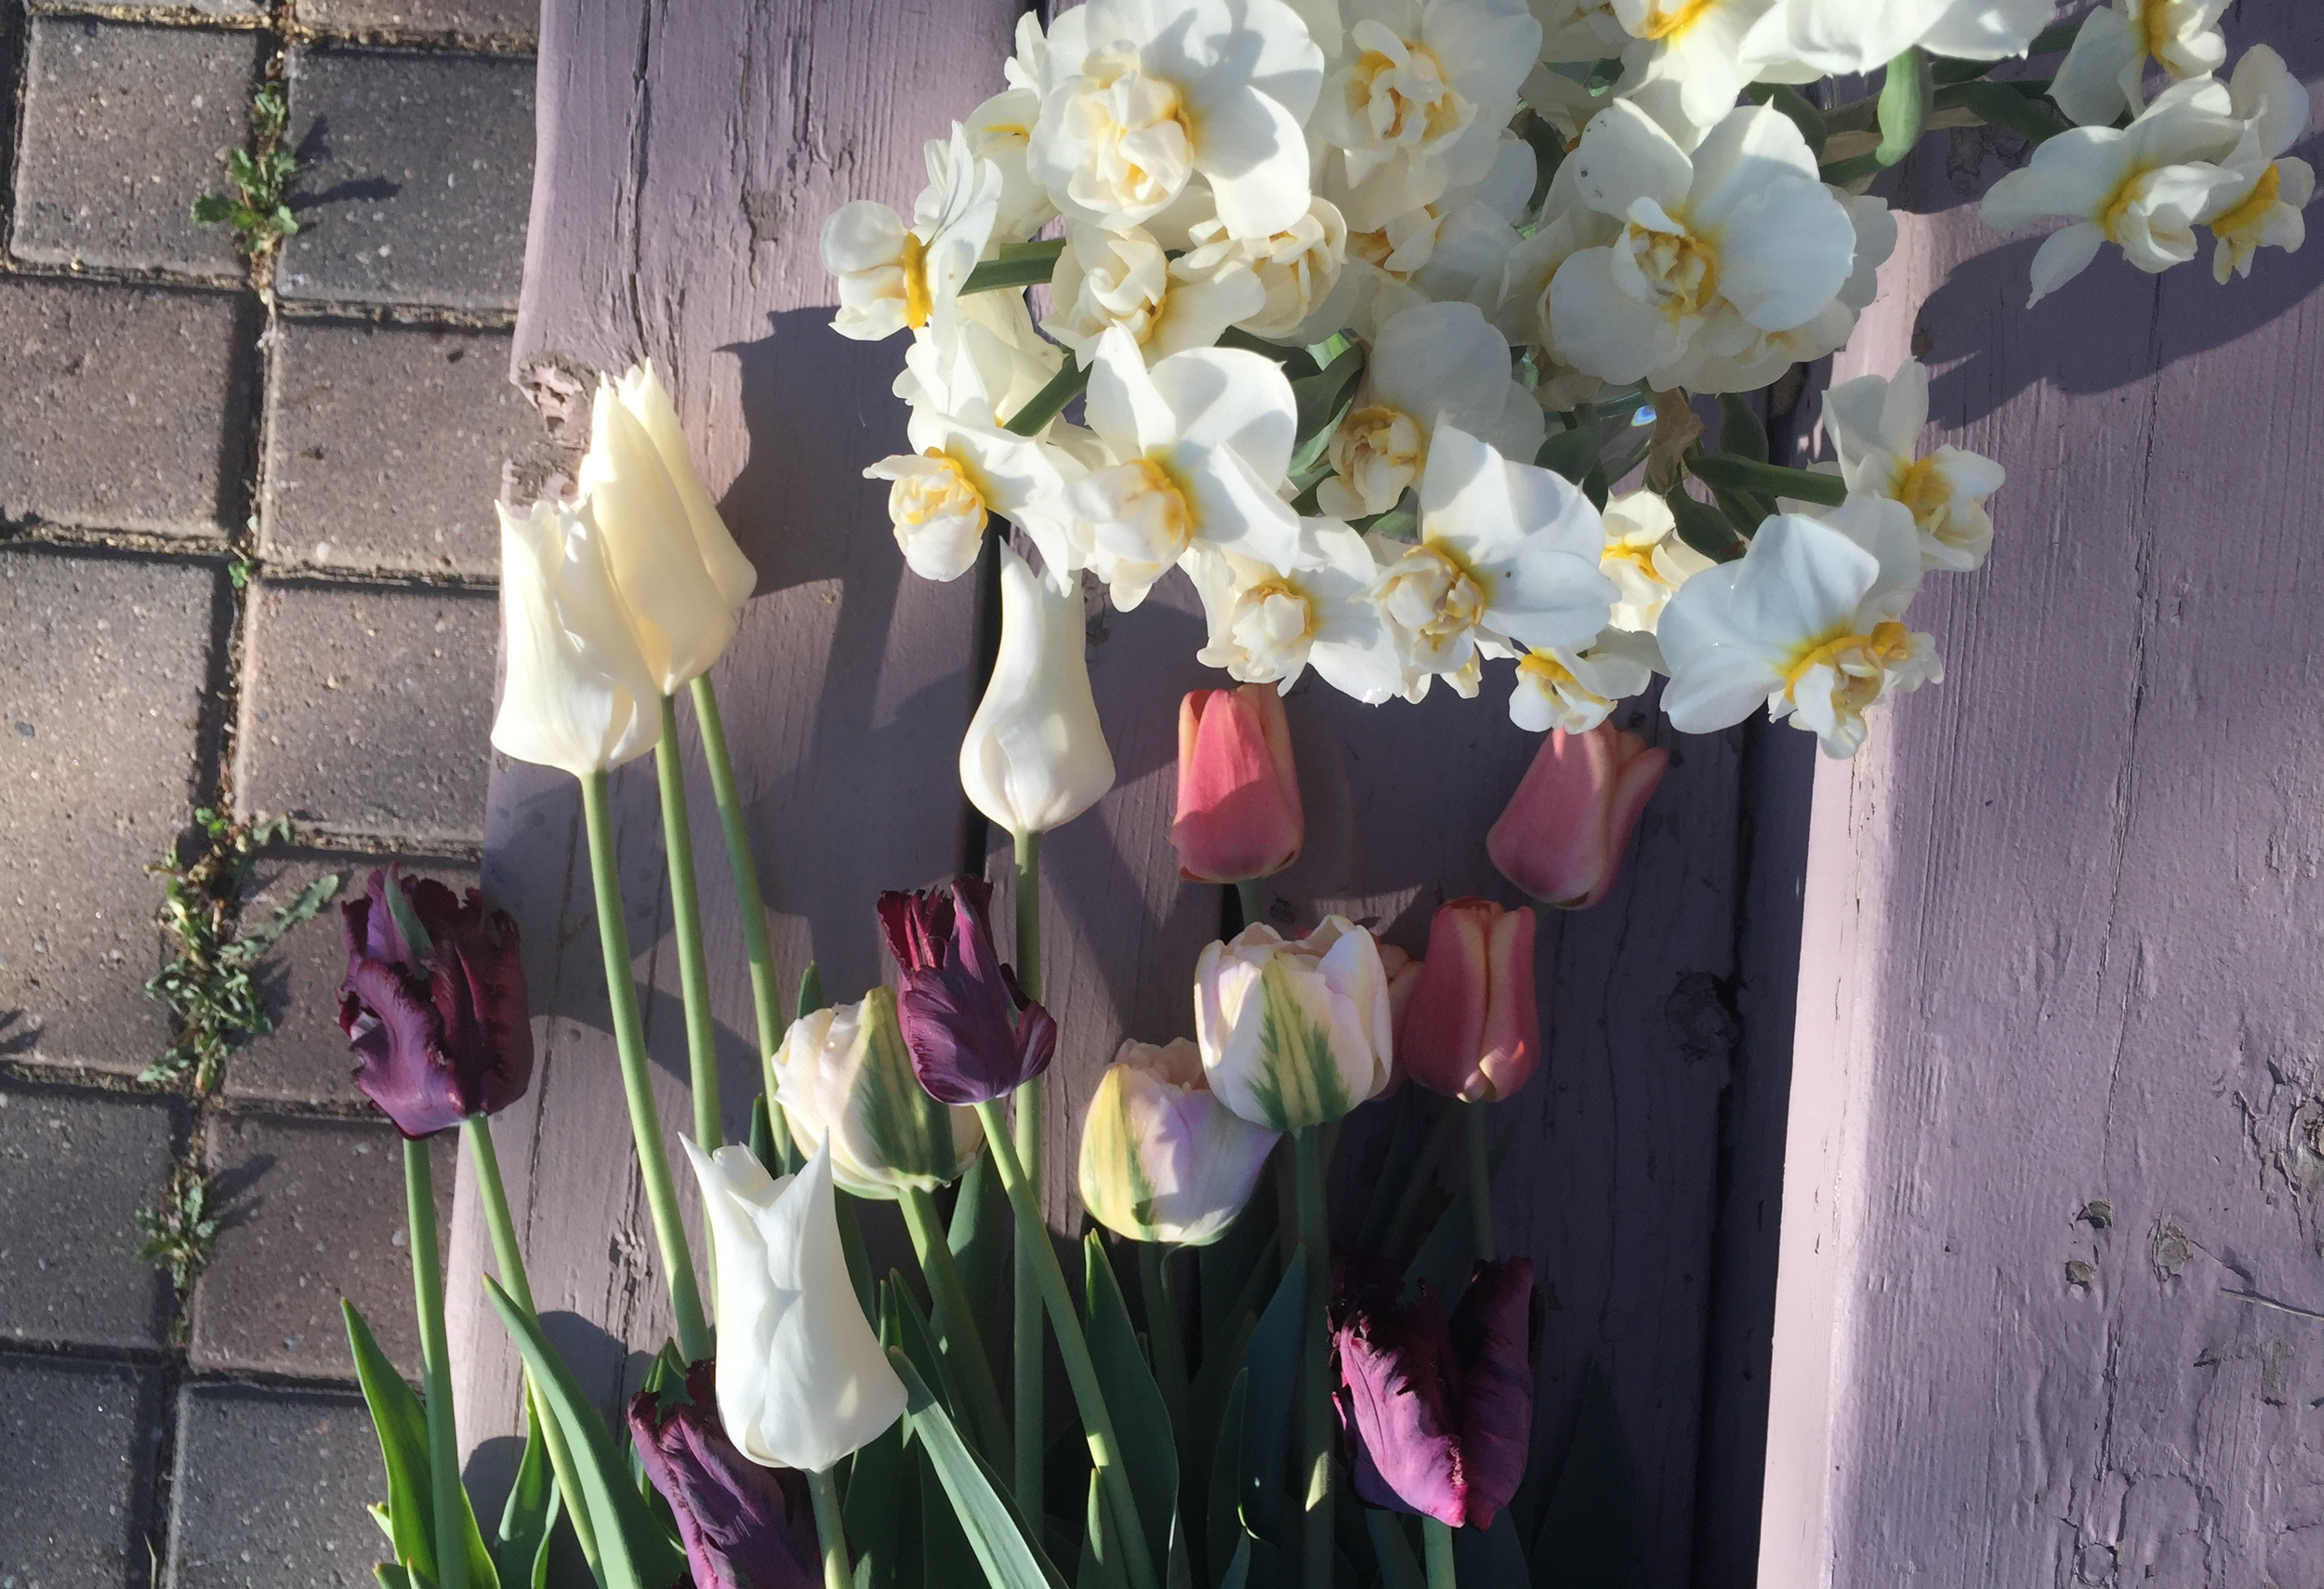 Early morning harvest of 'White Triumphator.' black parrot, 'Angelique' and 'Apricot Foxx' tulips along with 'Cheerfulness' daffodils